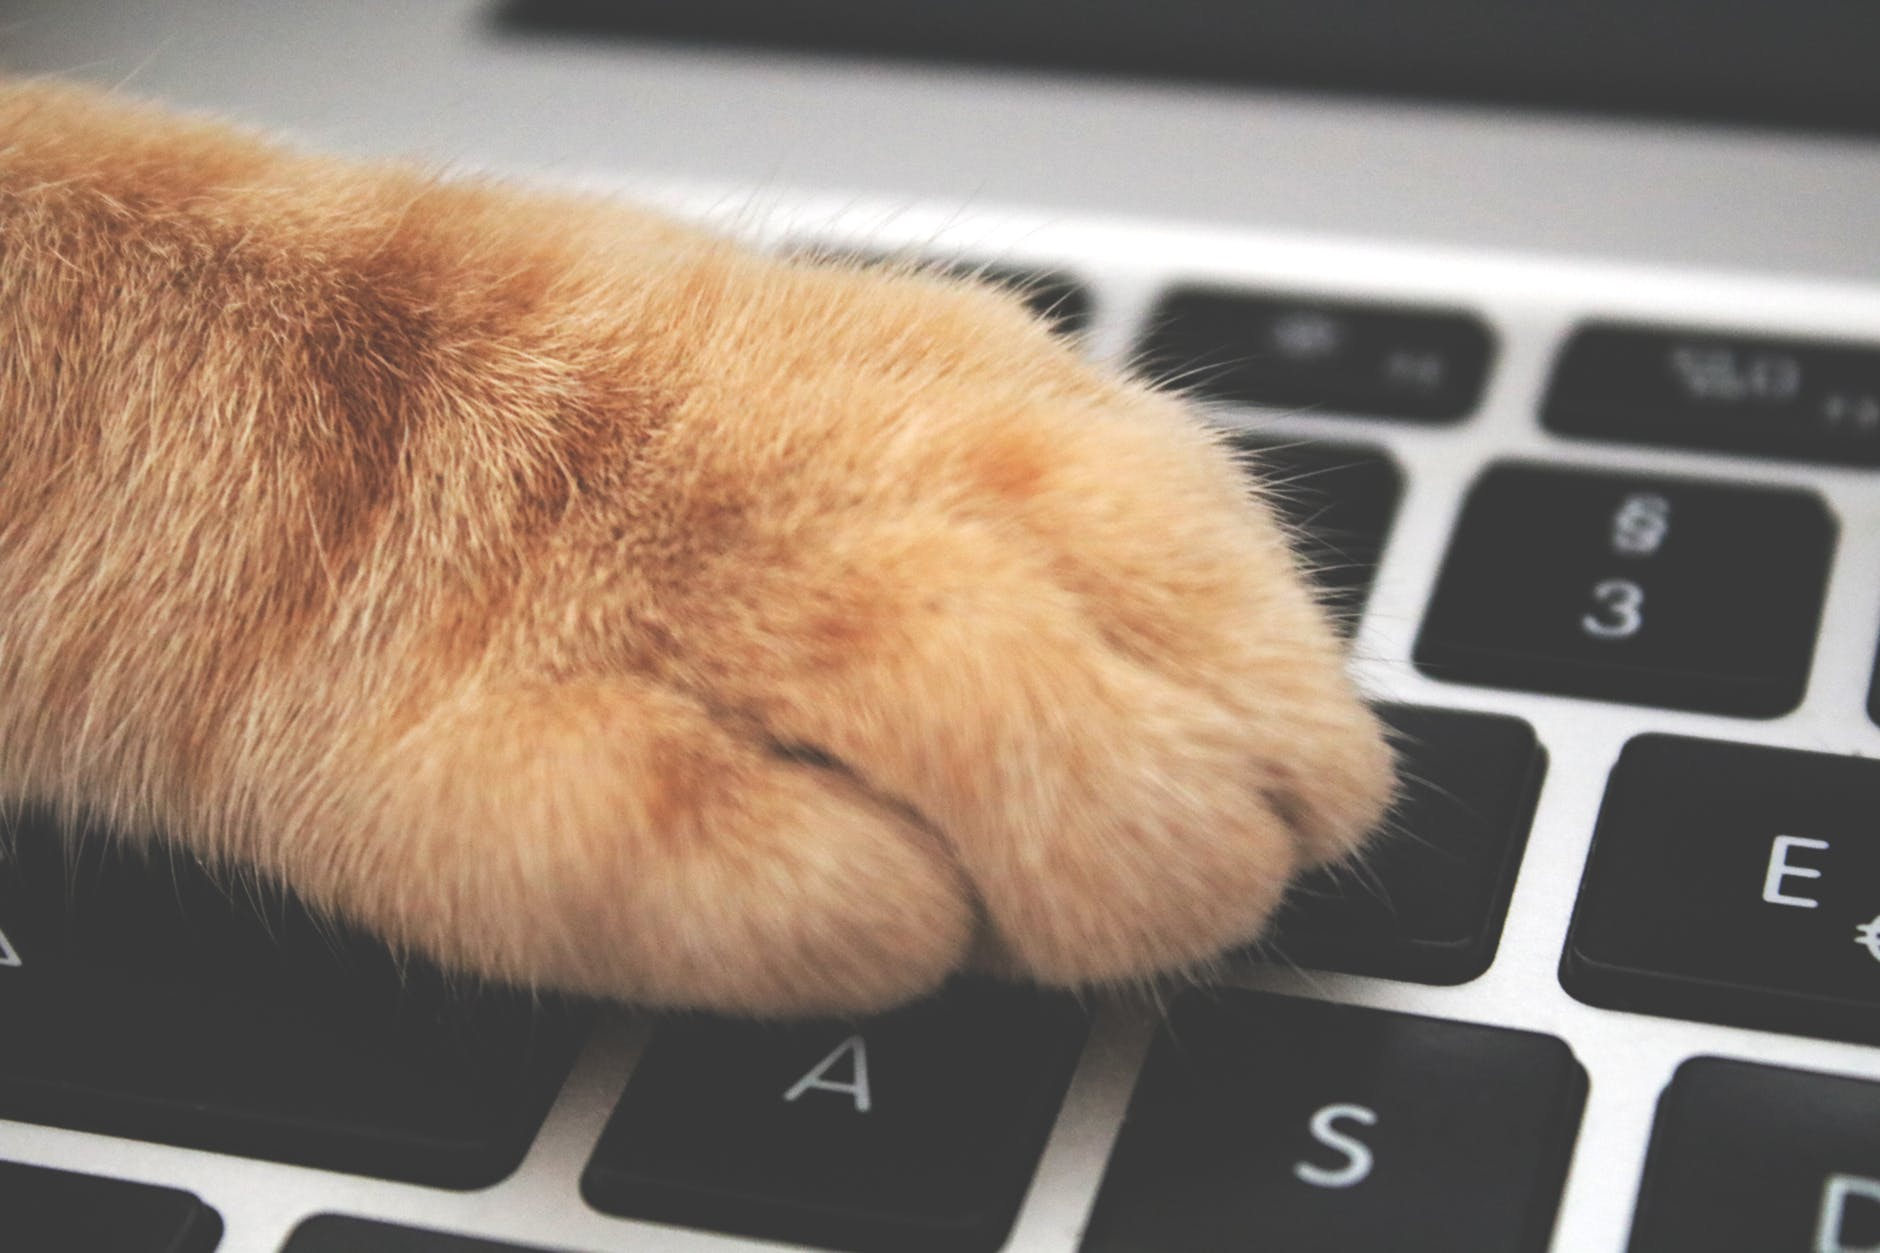 paw on keyboard